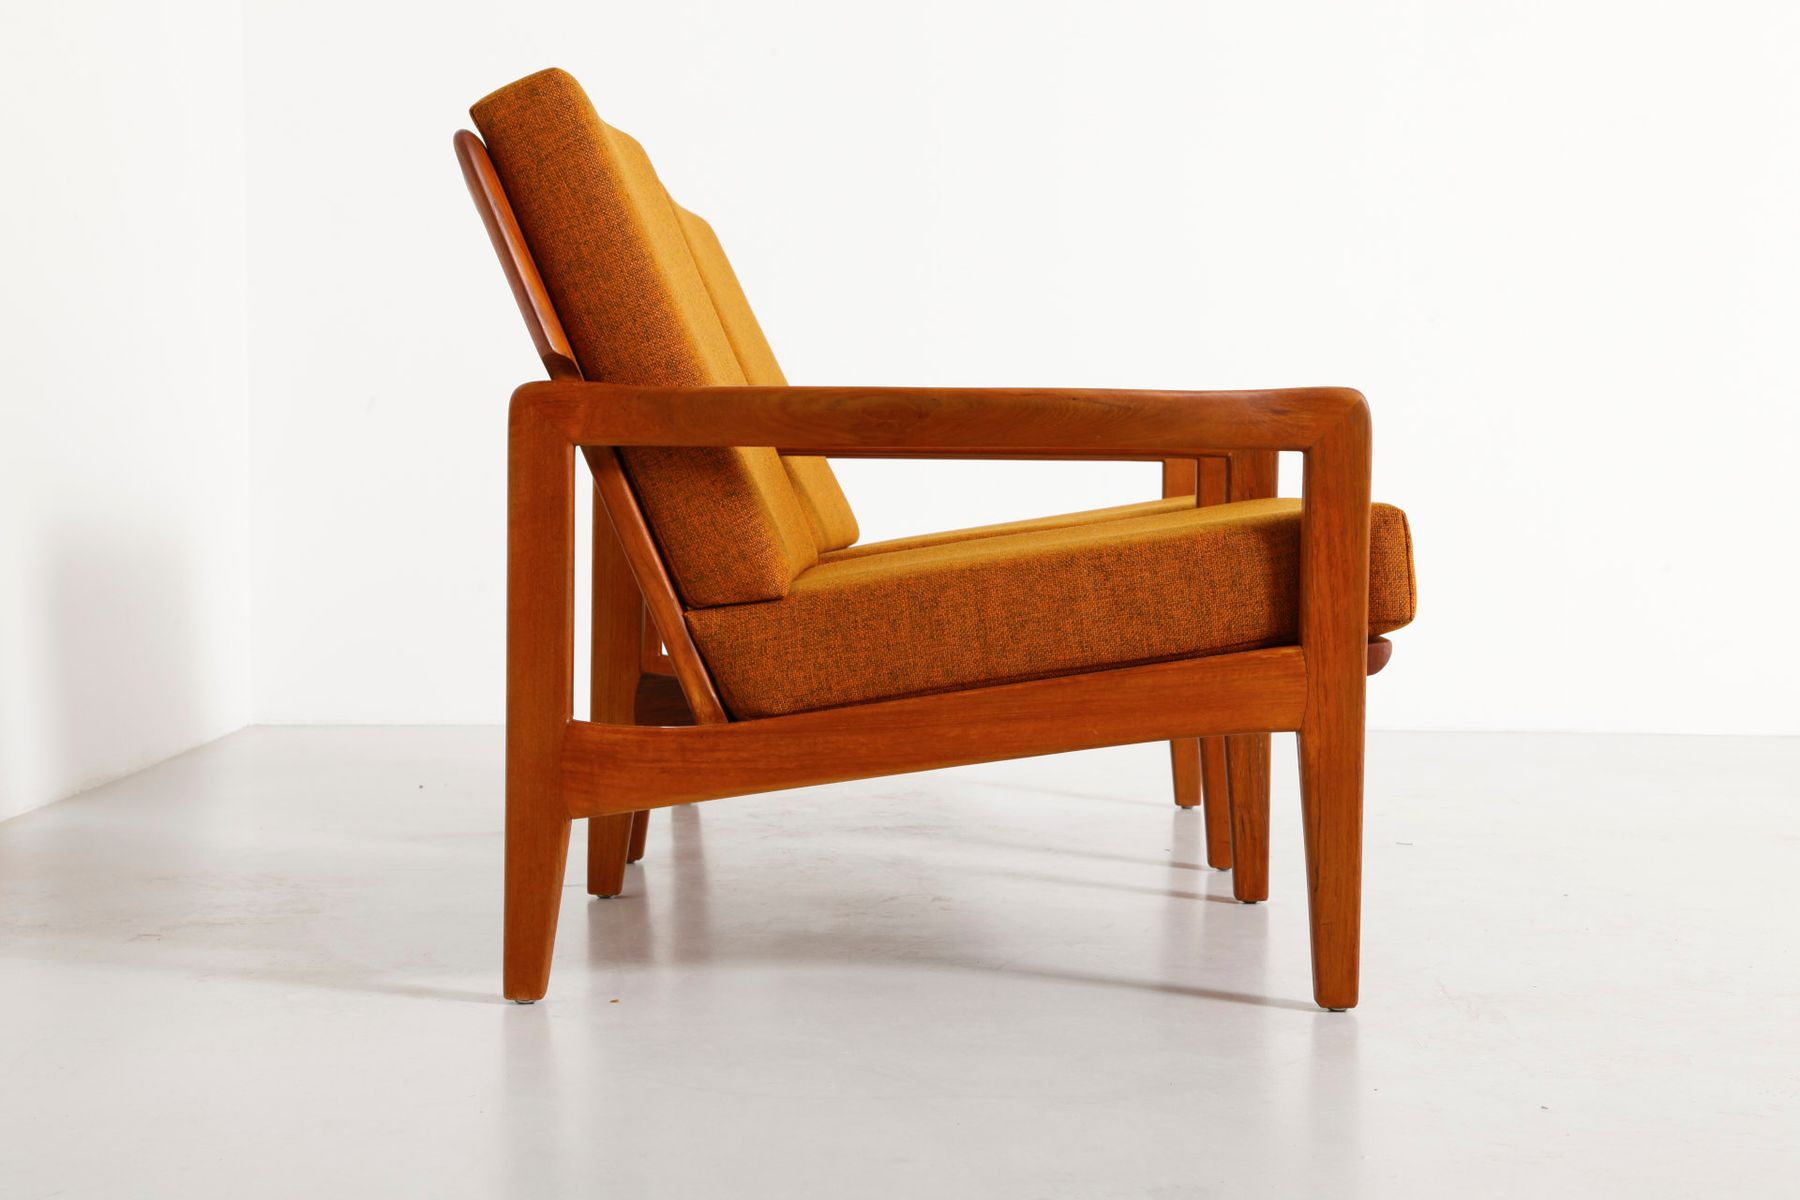 Teak armchairs from eilersen 1960s set of 2 for sale at for 2 armchairs for sale